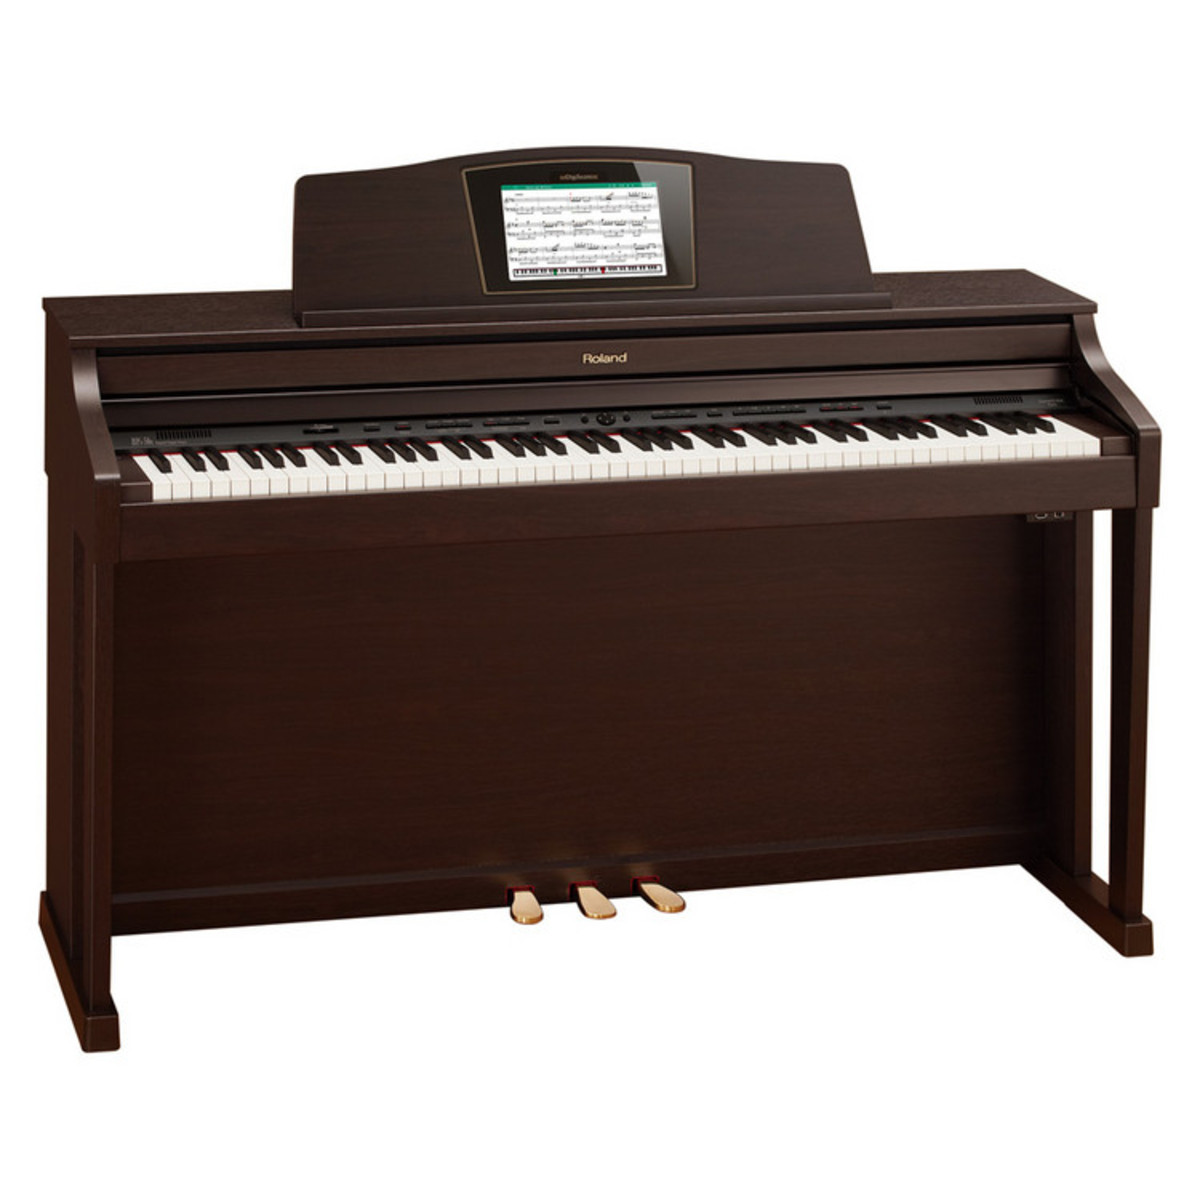 roland hpi 50e digital piano rosewood at. Black Bedroom Furniture Sets. Home Design Ideas